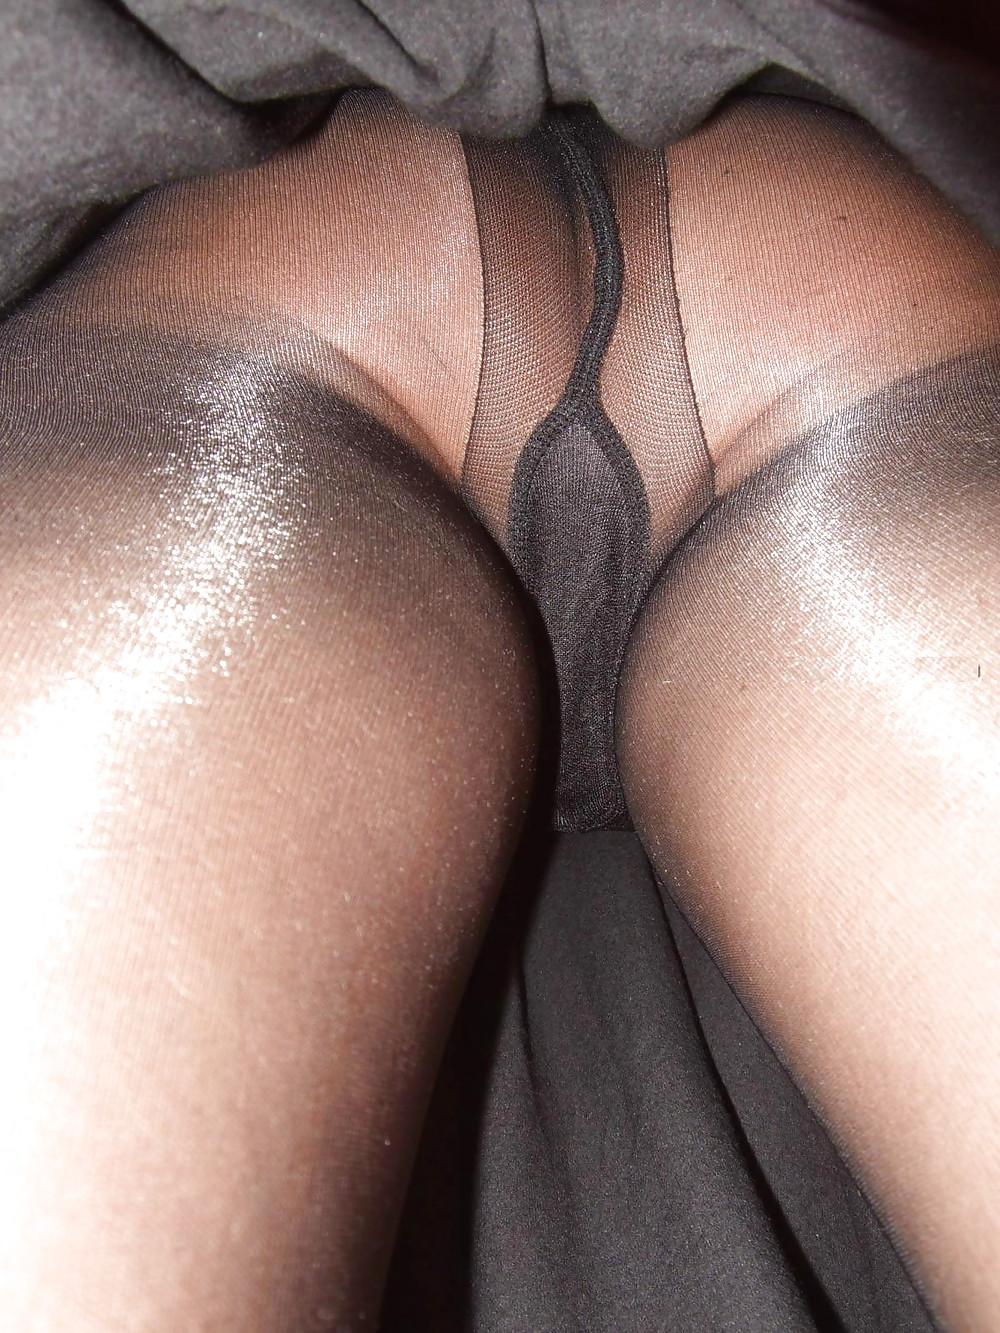 amateur-closeup-pantyhose-videos-extreme-sexy-glamour